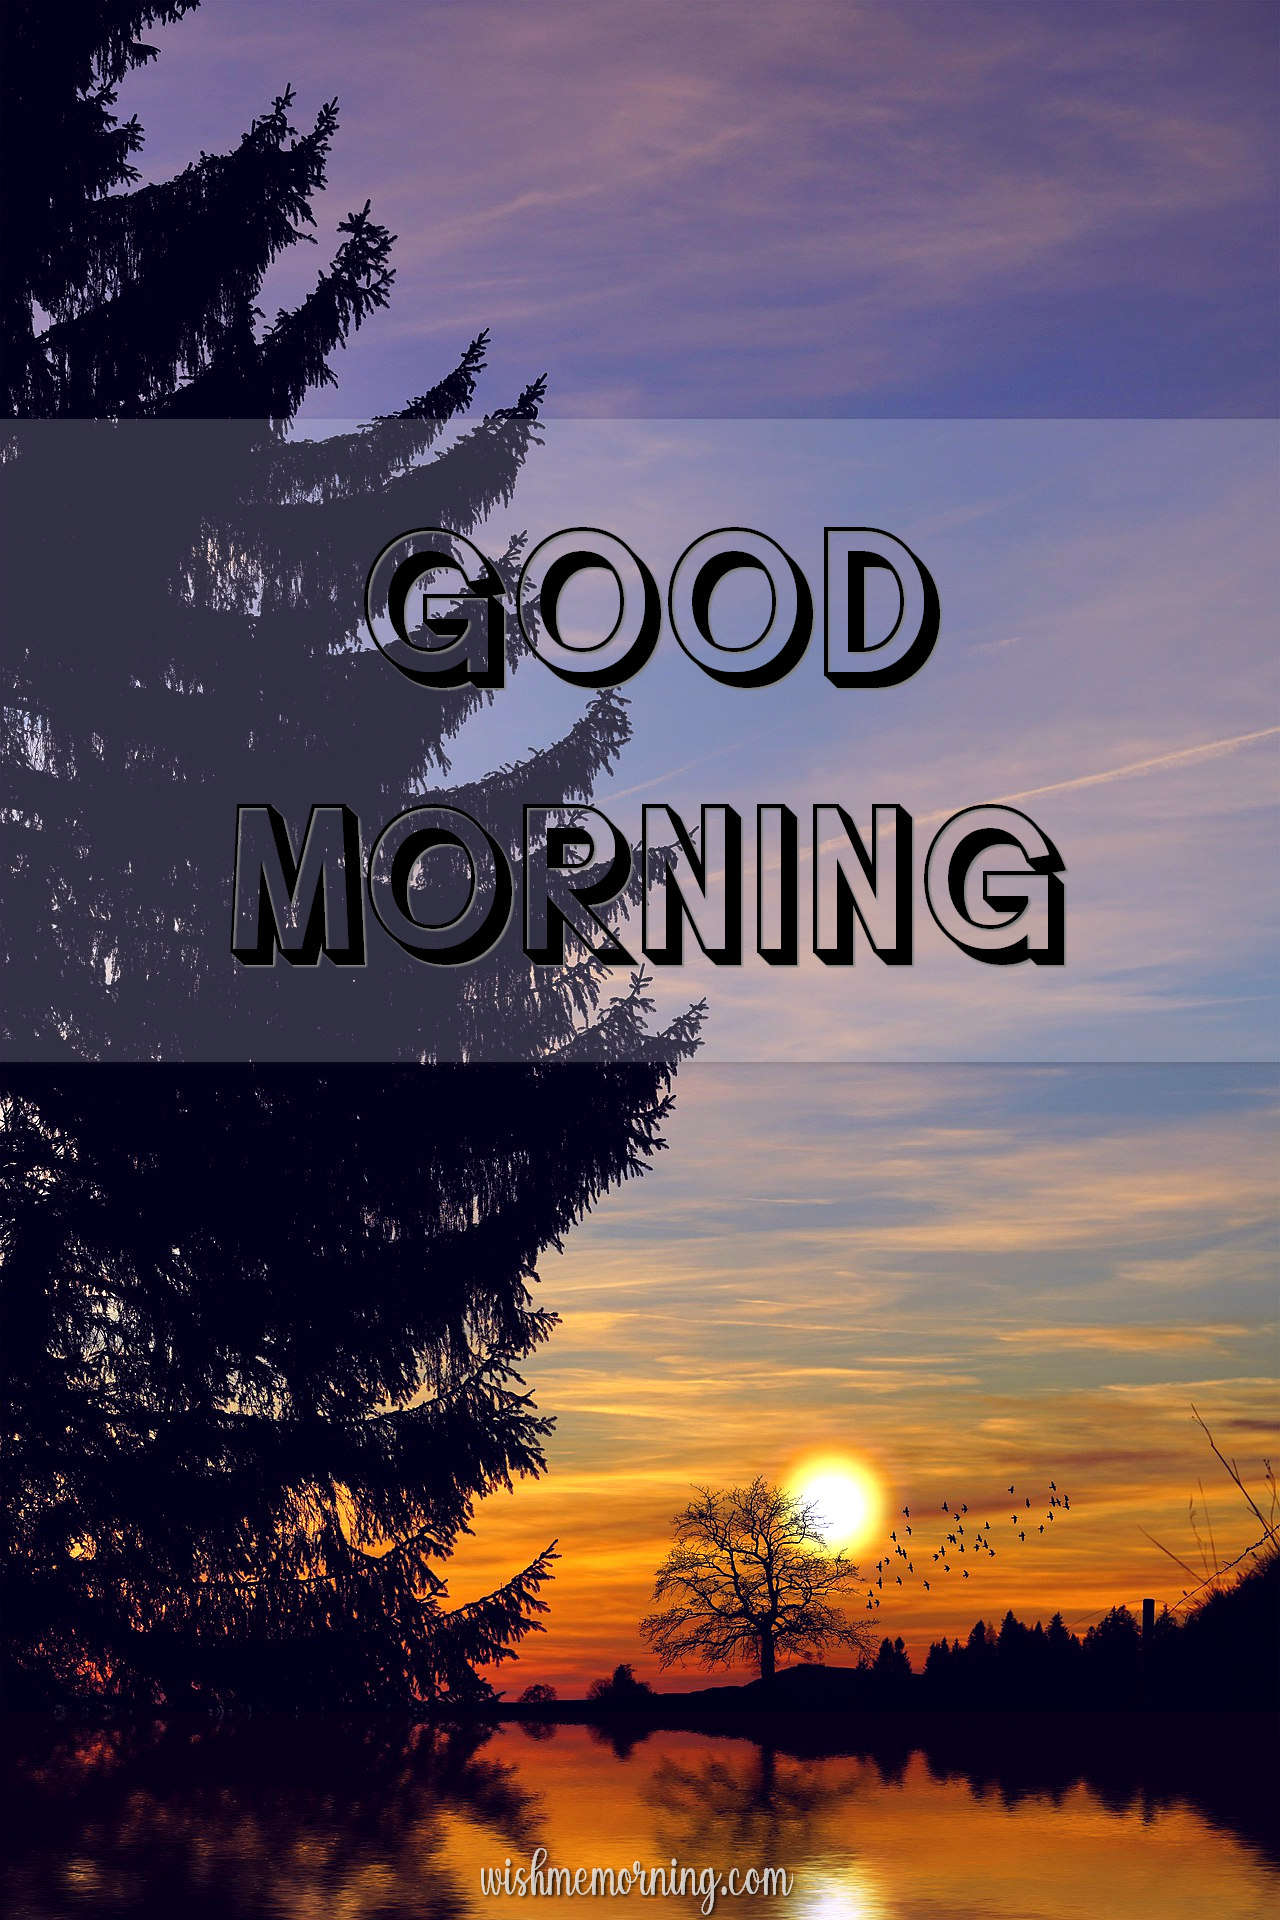 Beautiful Trees Woods Nature Images Wishes wishmemorning.com 13